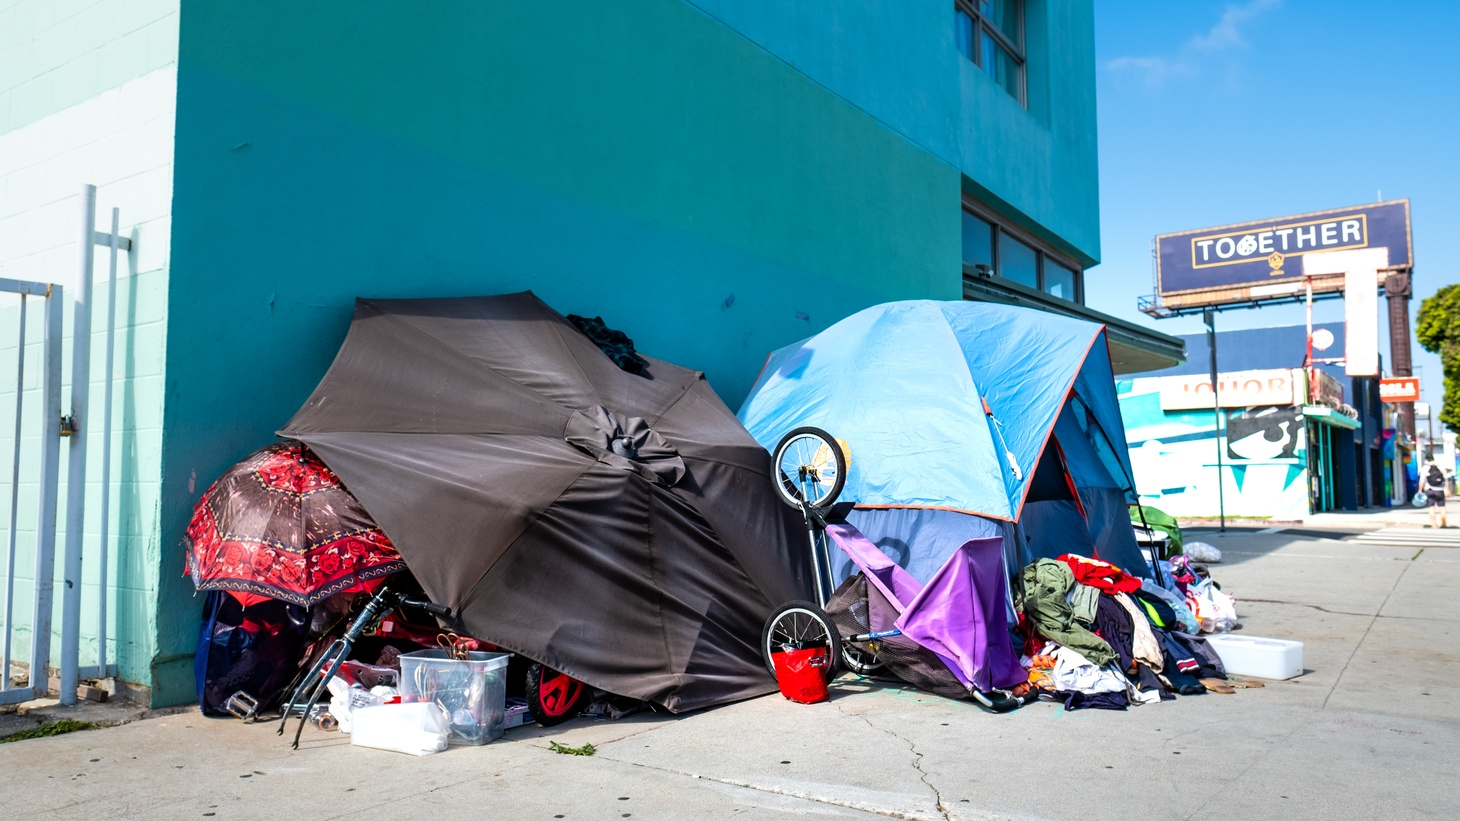 Many people are still living on the streets during COVID-19. Will Project Roomkey reach its goal of putting 15,000 of them into hotel rooms?